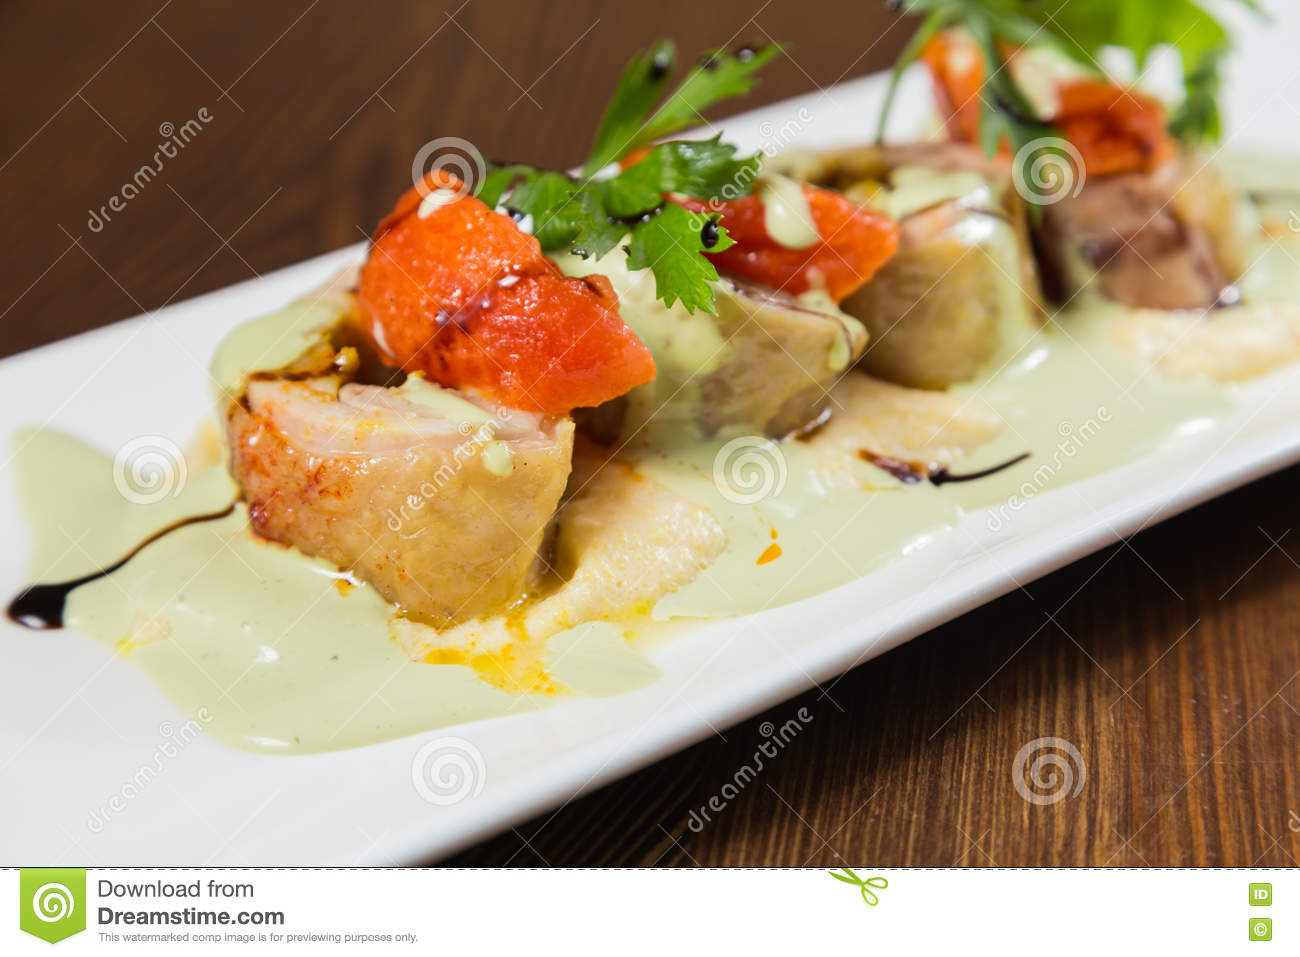 Delicious food in a nice submission on a white plate